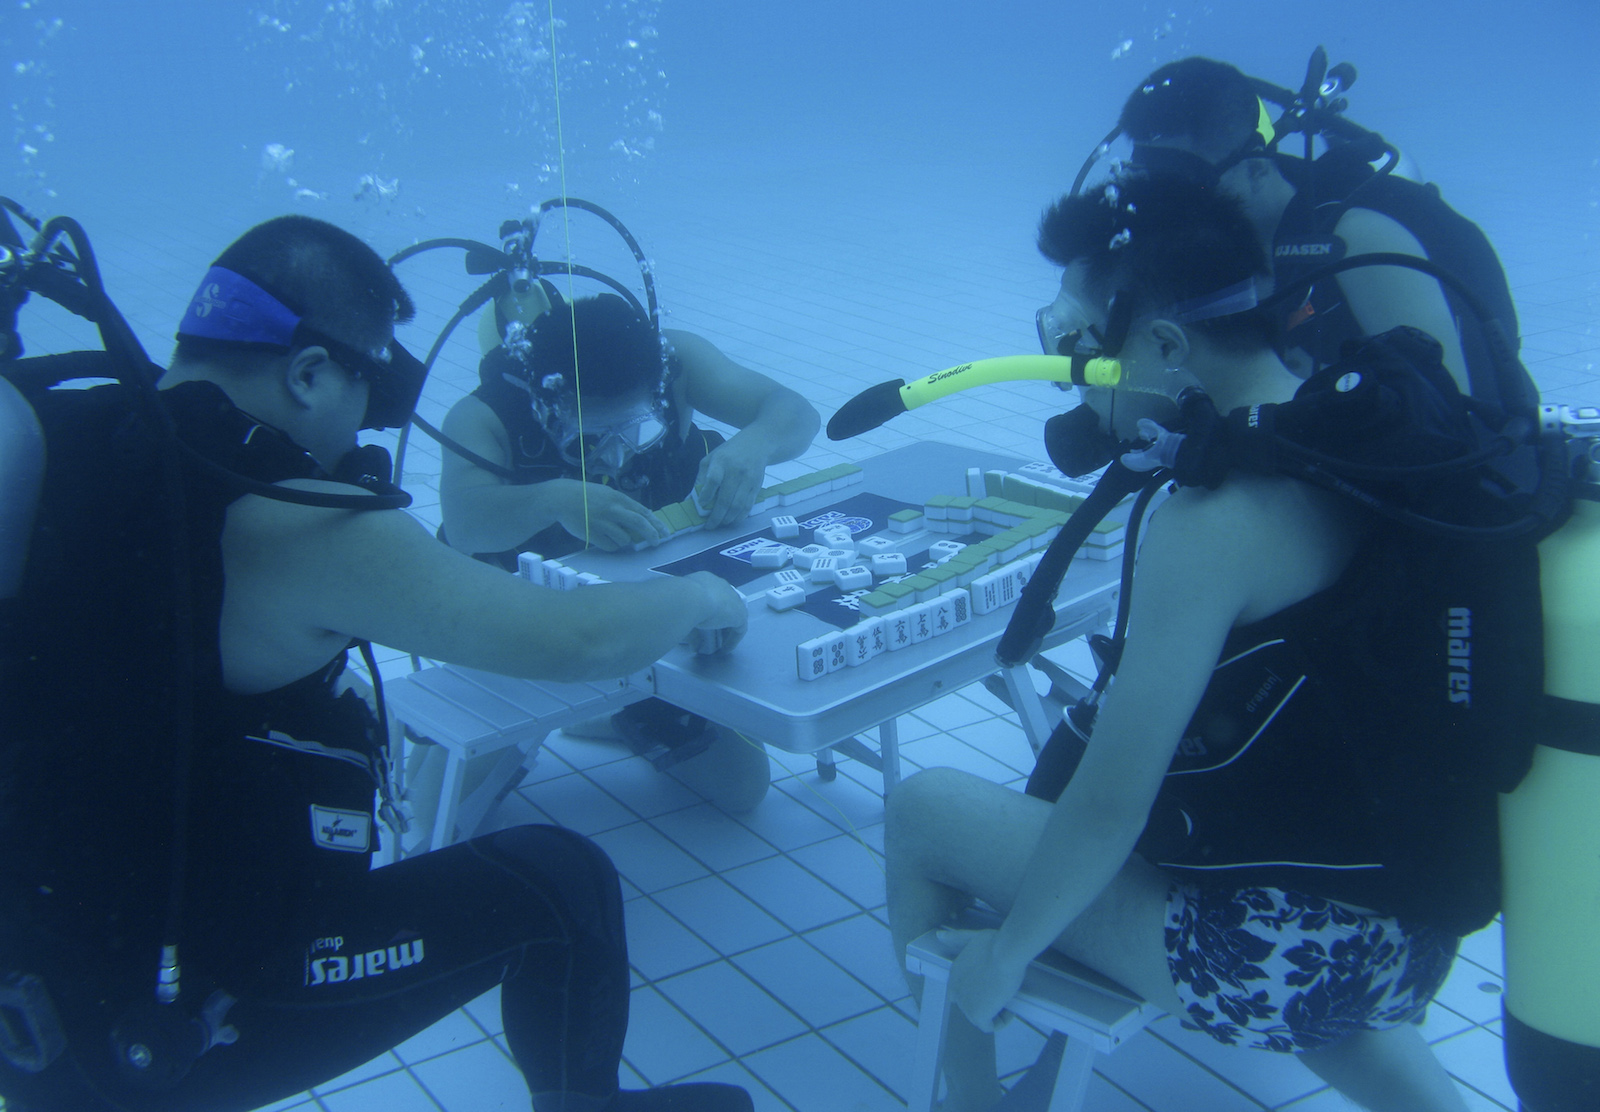 Diving instructors play mahjong in a swimming pool in Xiangtan, Hunan province August 9, 2013. According to local media, the trainers re-invented the game of mahjong by playing it under water in a 5.5-metre-deep pool to escape from the summer heat, and since then more than 10 divers have been playing the game. China's top meteorological authority on Tuesday continued to warn of prolonged heat that has afflicted central and eastern China since July, Xinhua News Agency reported. Picture taken August 9, 2013.